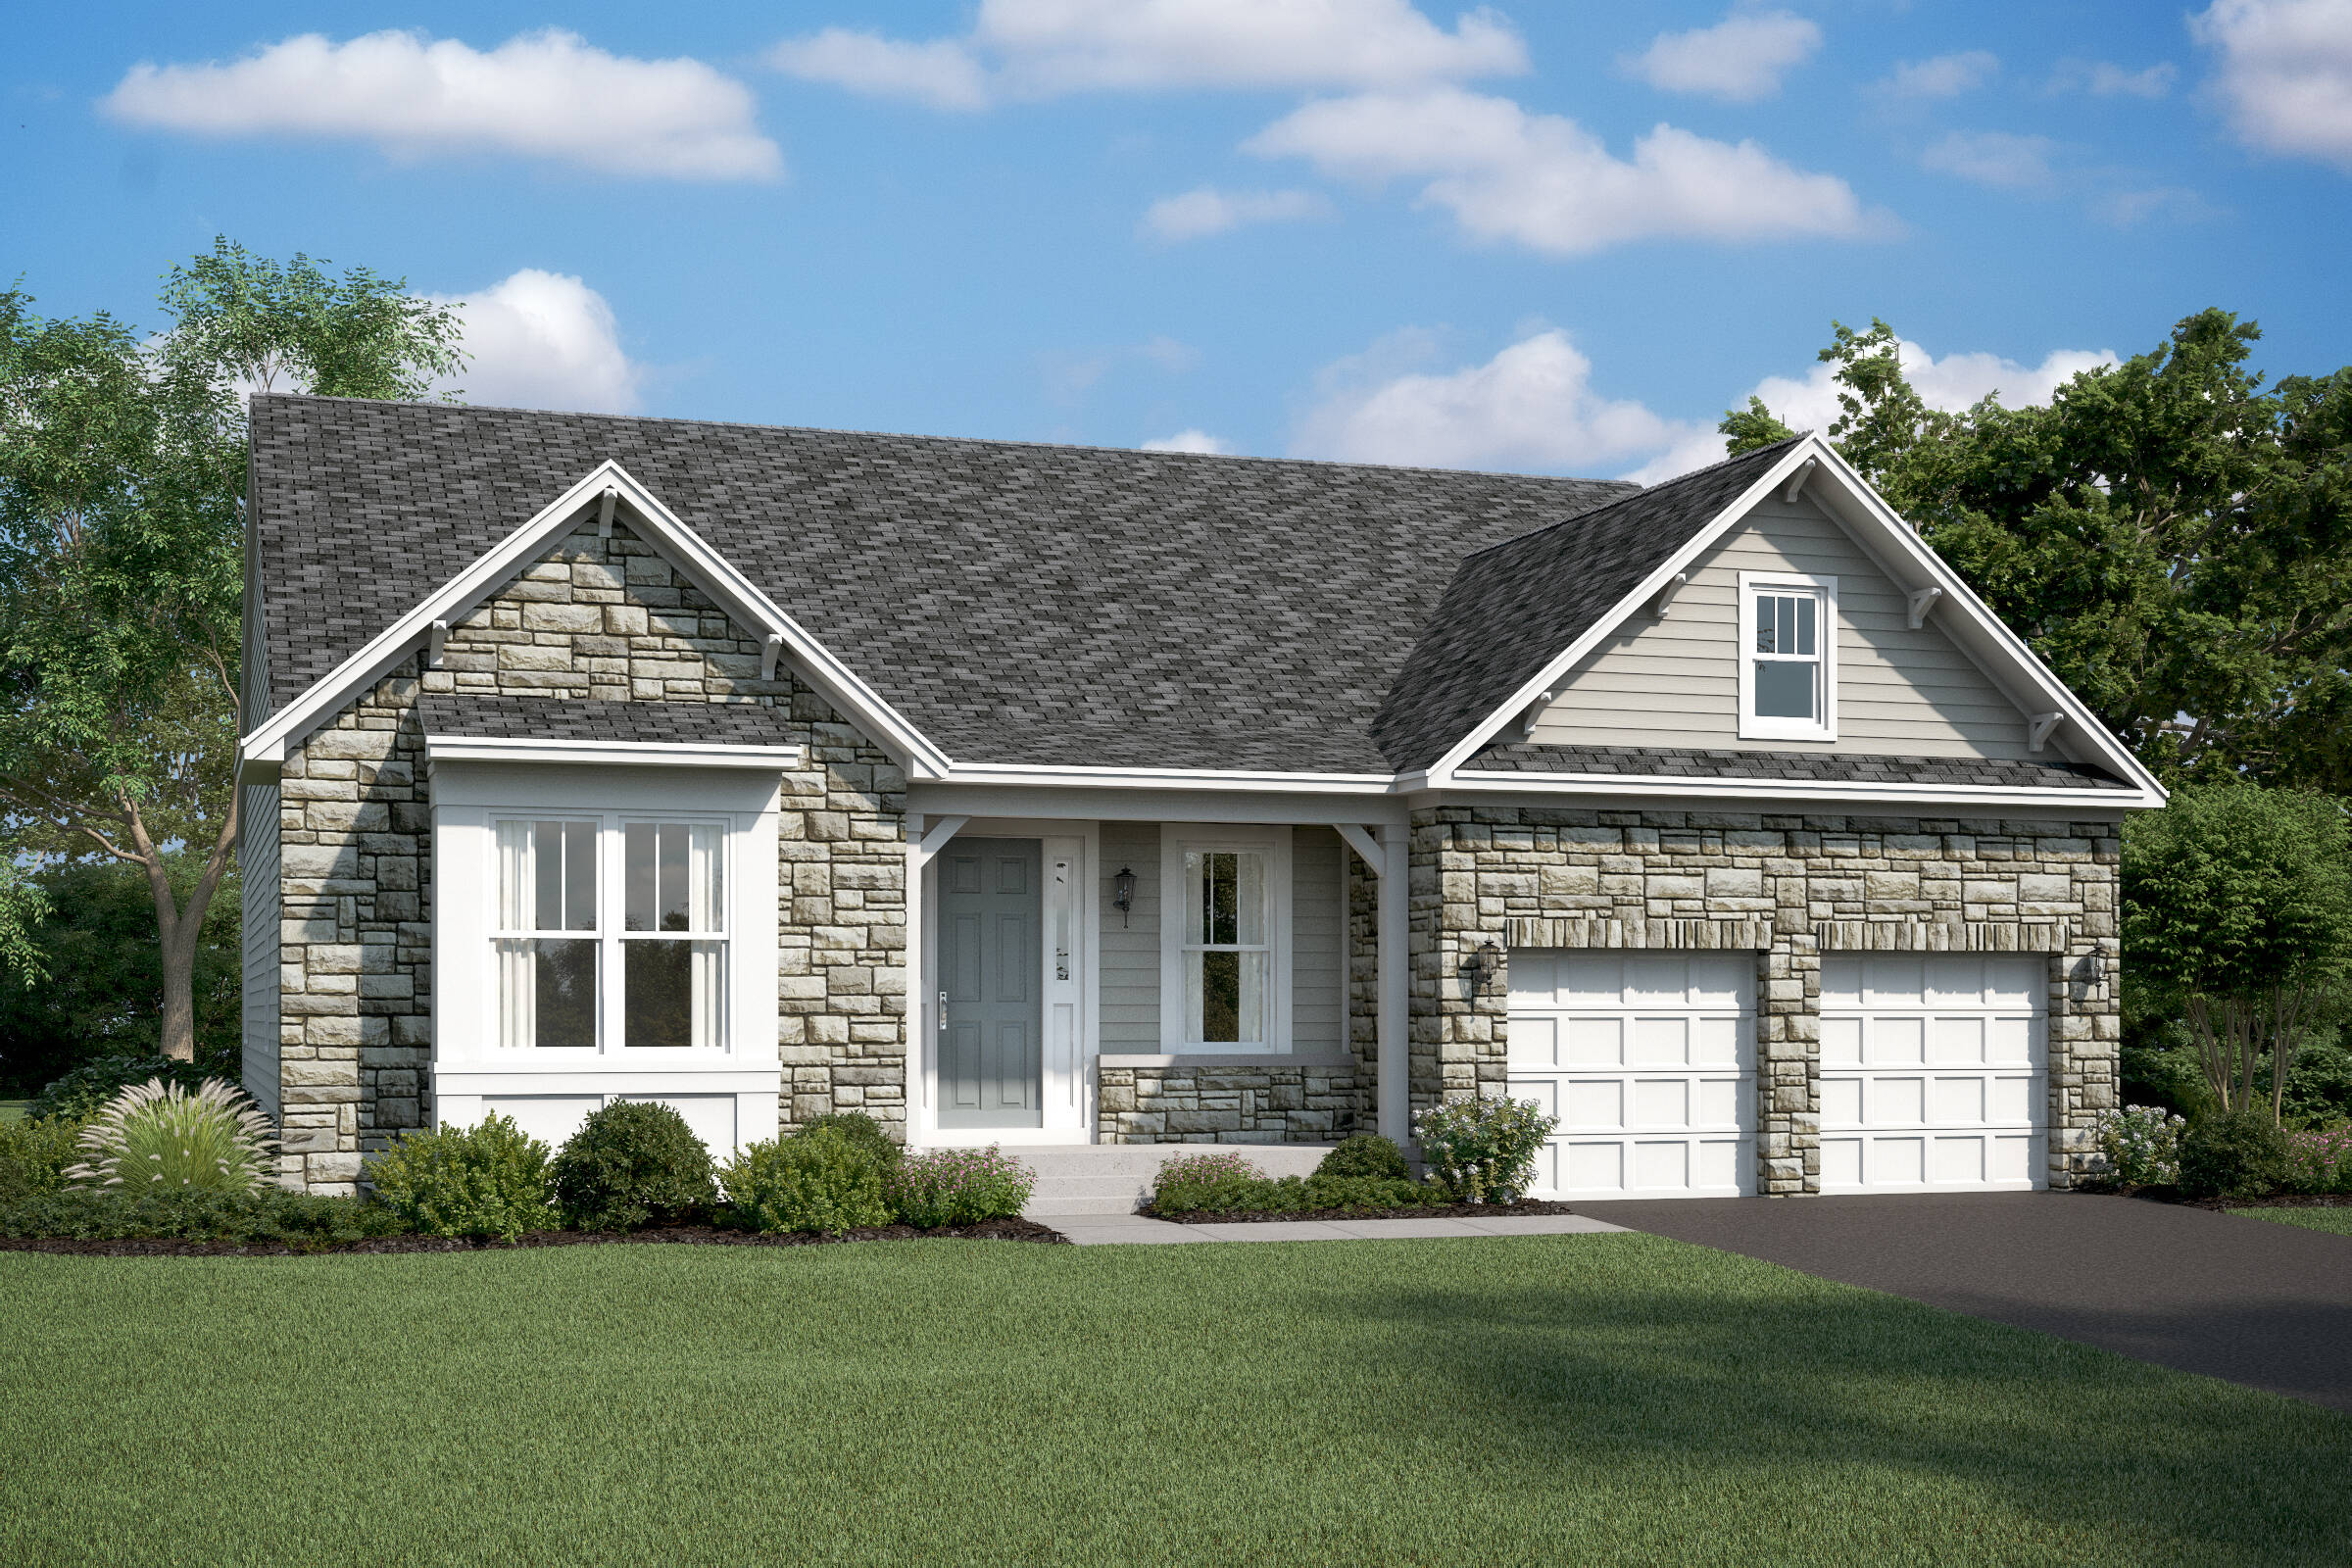 st michael ft new homes at red mill pond in delaware